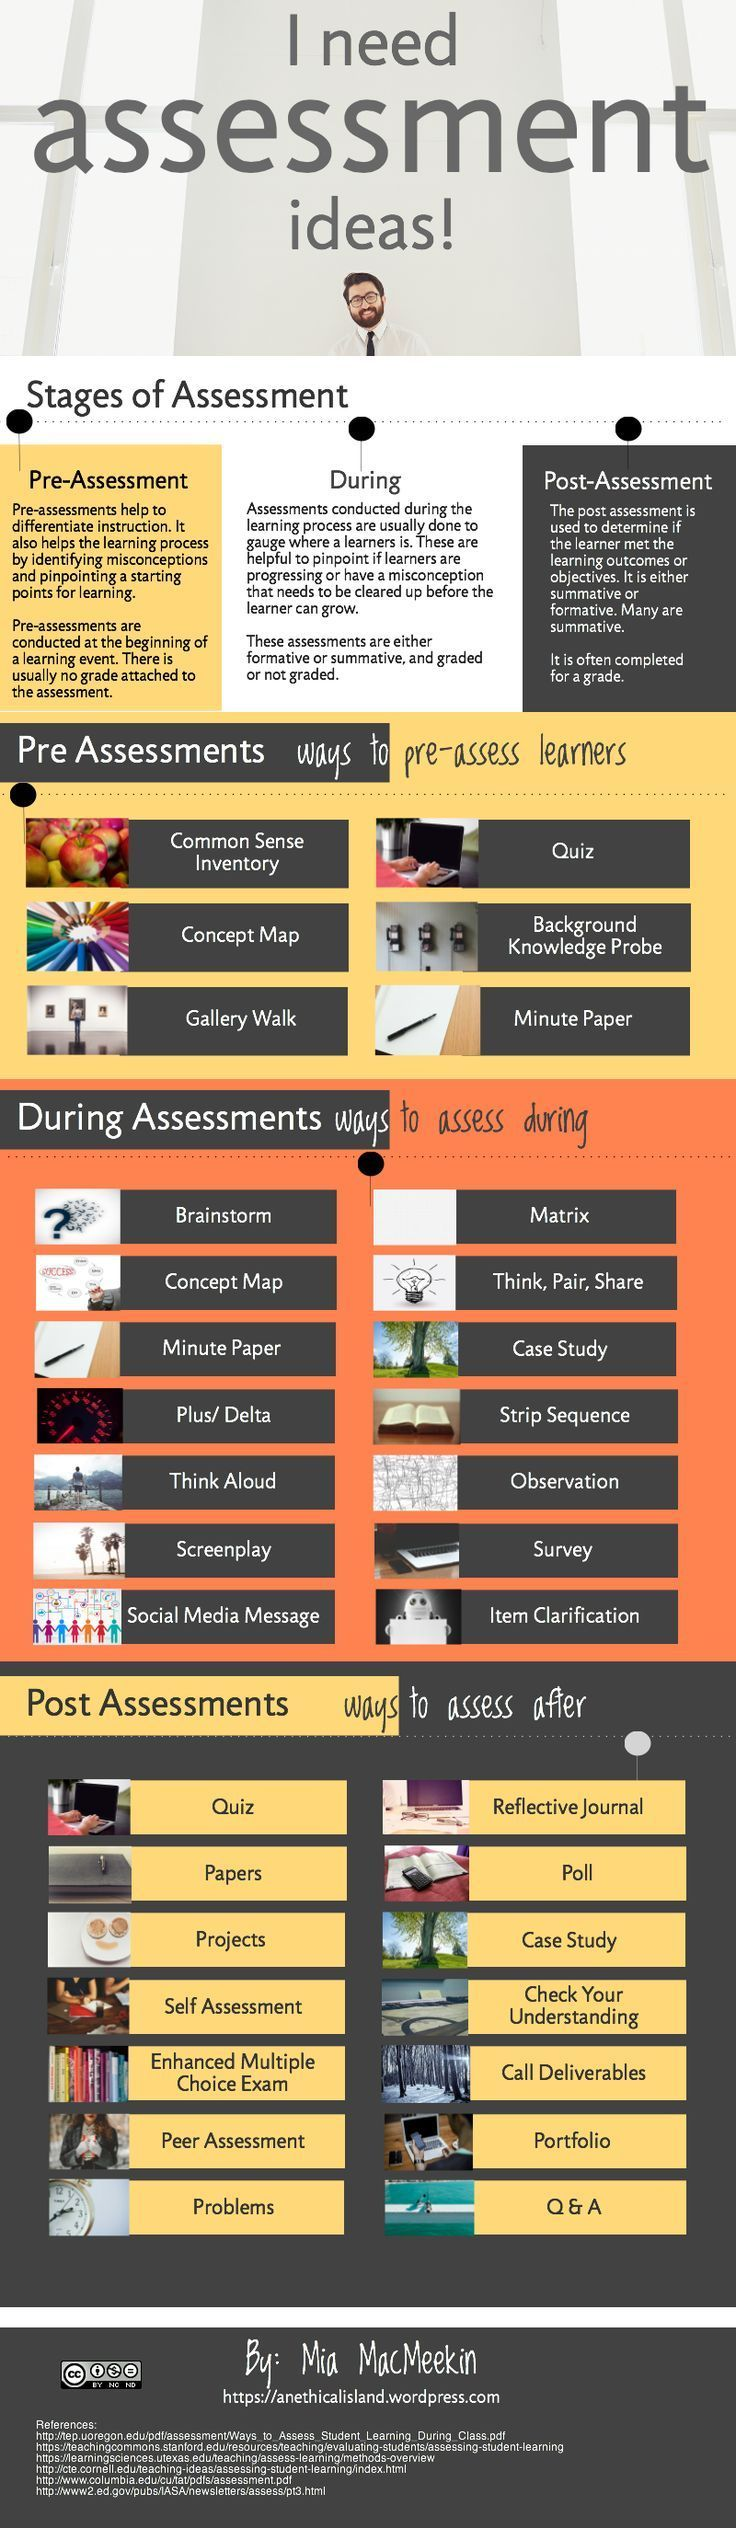 Assessment Ideas for Each Stage of Assessment